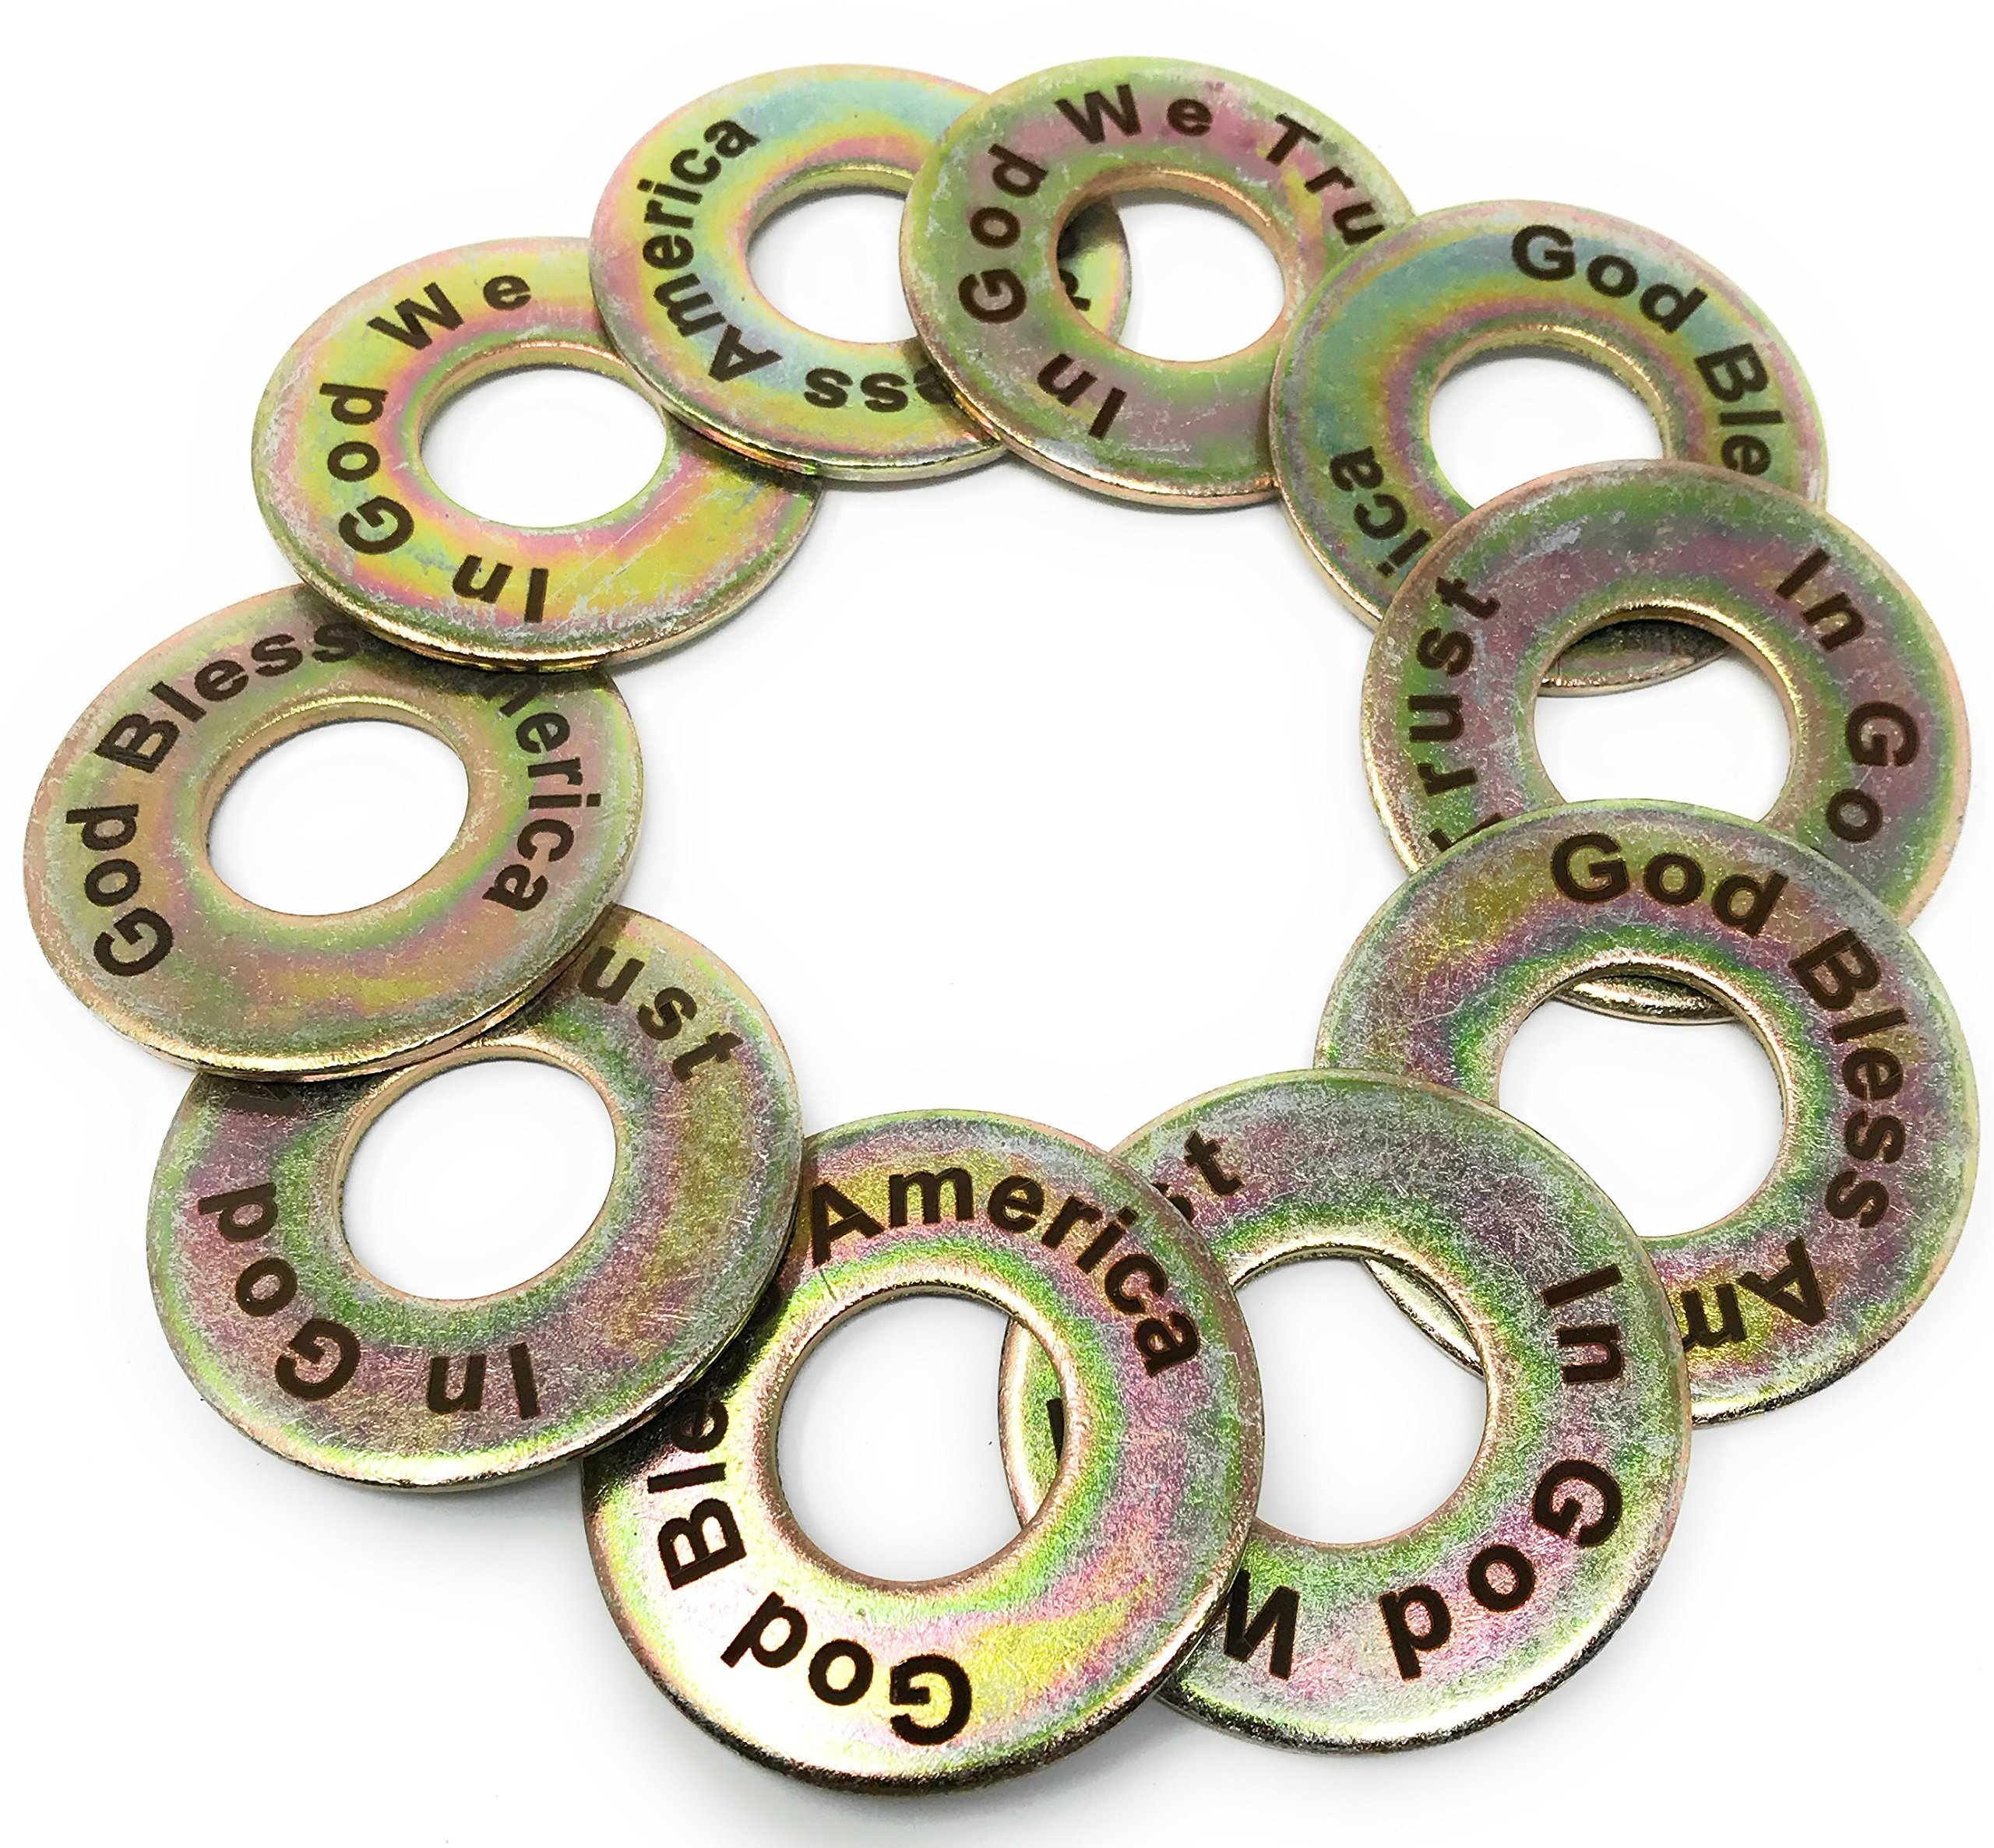 Laser Engraved God Bless America and In God We Trust Yellow Zinc Coated Steel Replacement 2-1/2'' Washer Toss Pitching Game Washers (Set of 10) by AirstreamIT